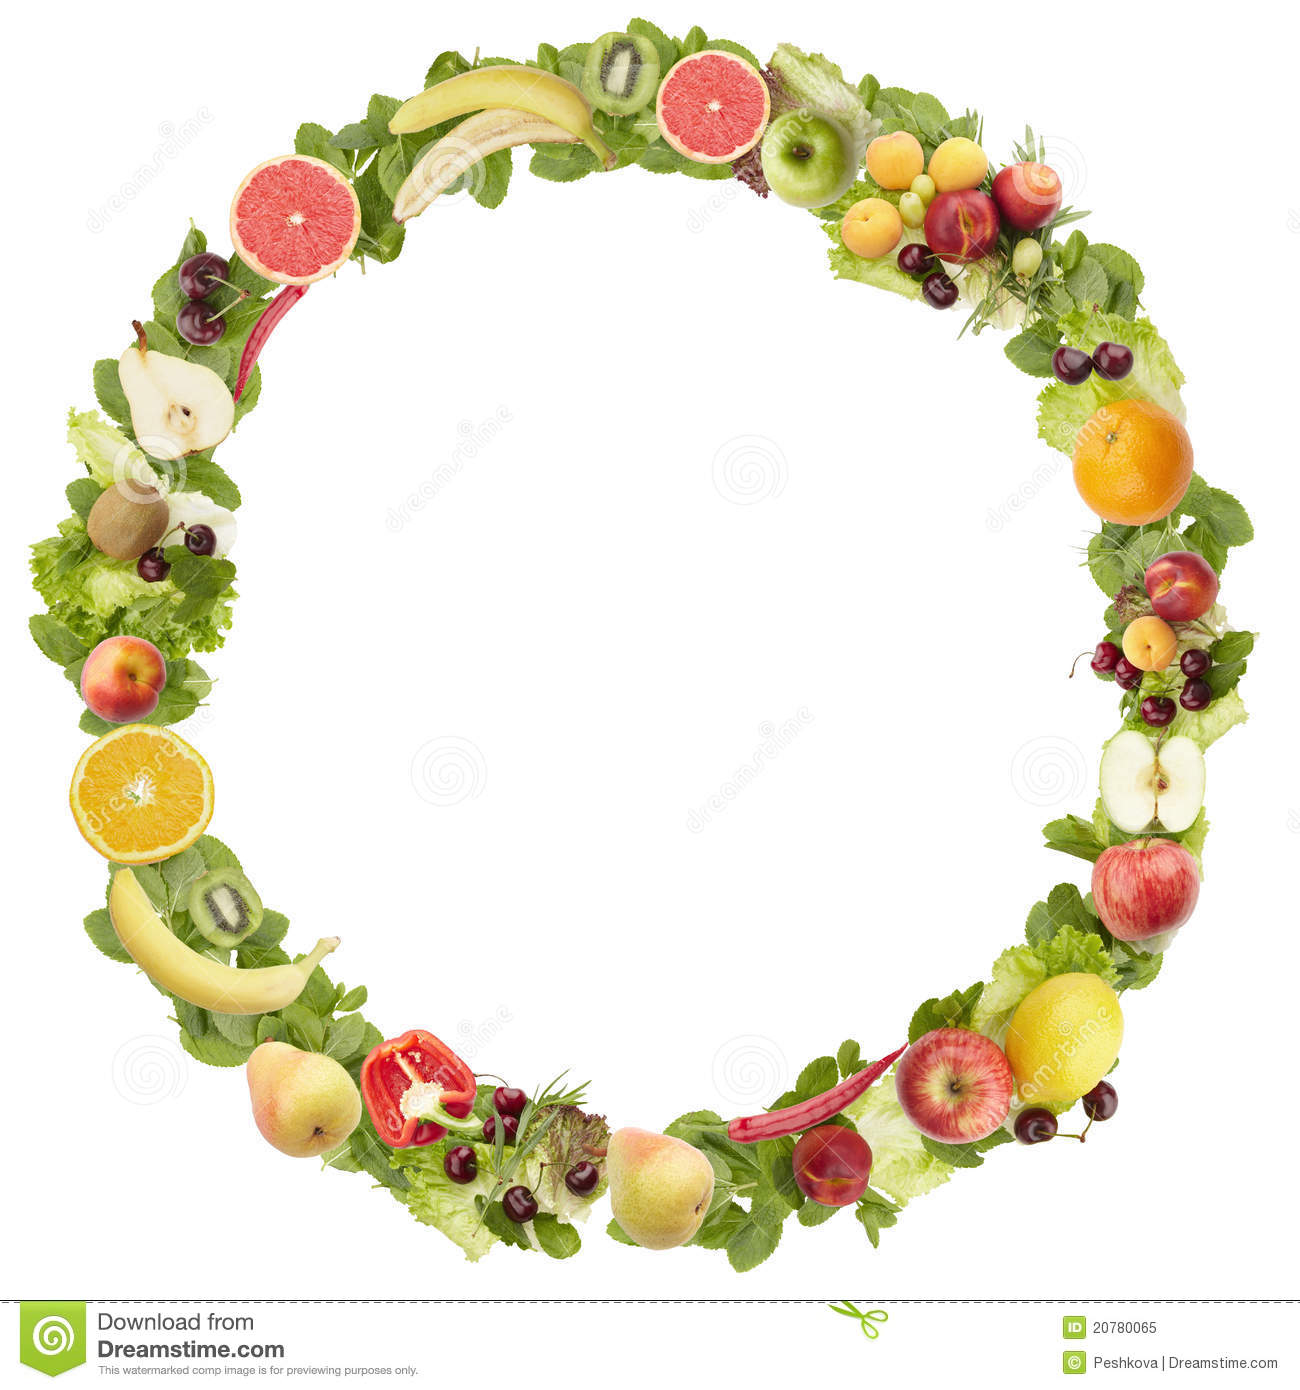 the round frame made of fruits and vegetables stock image